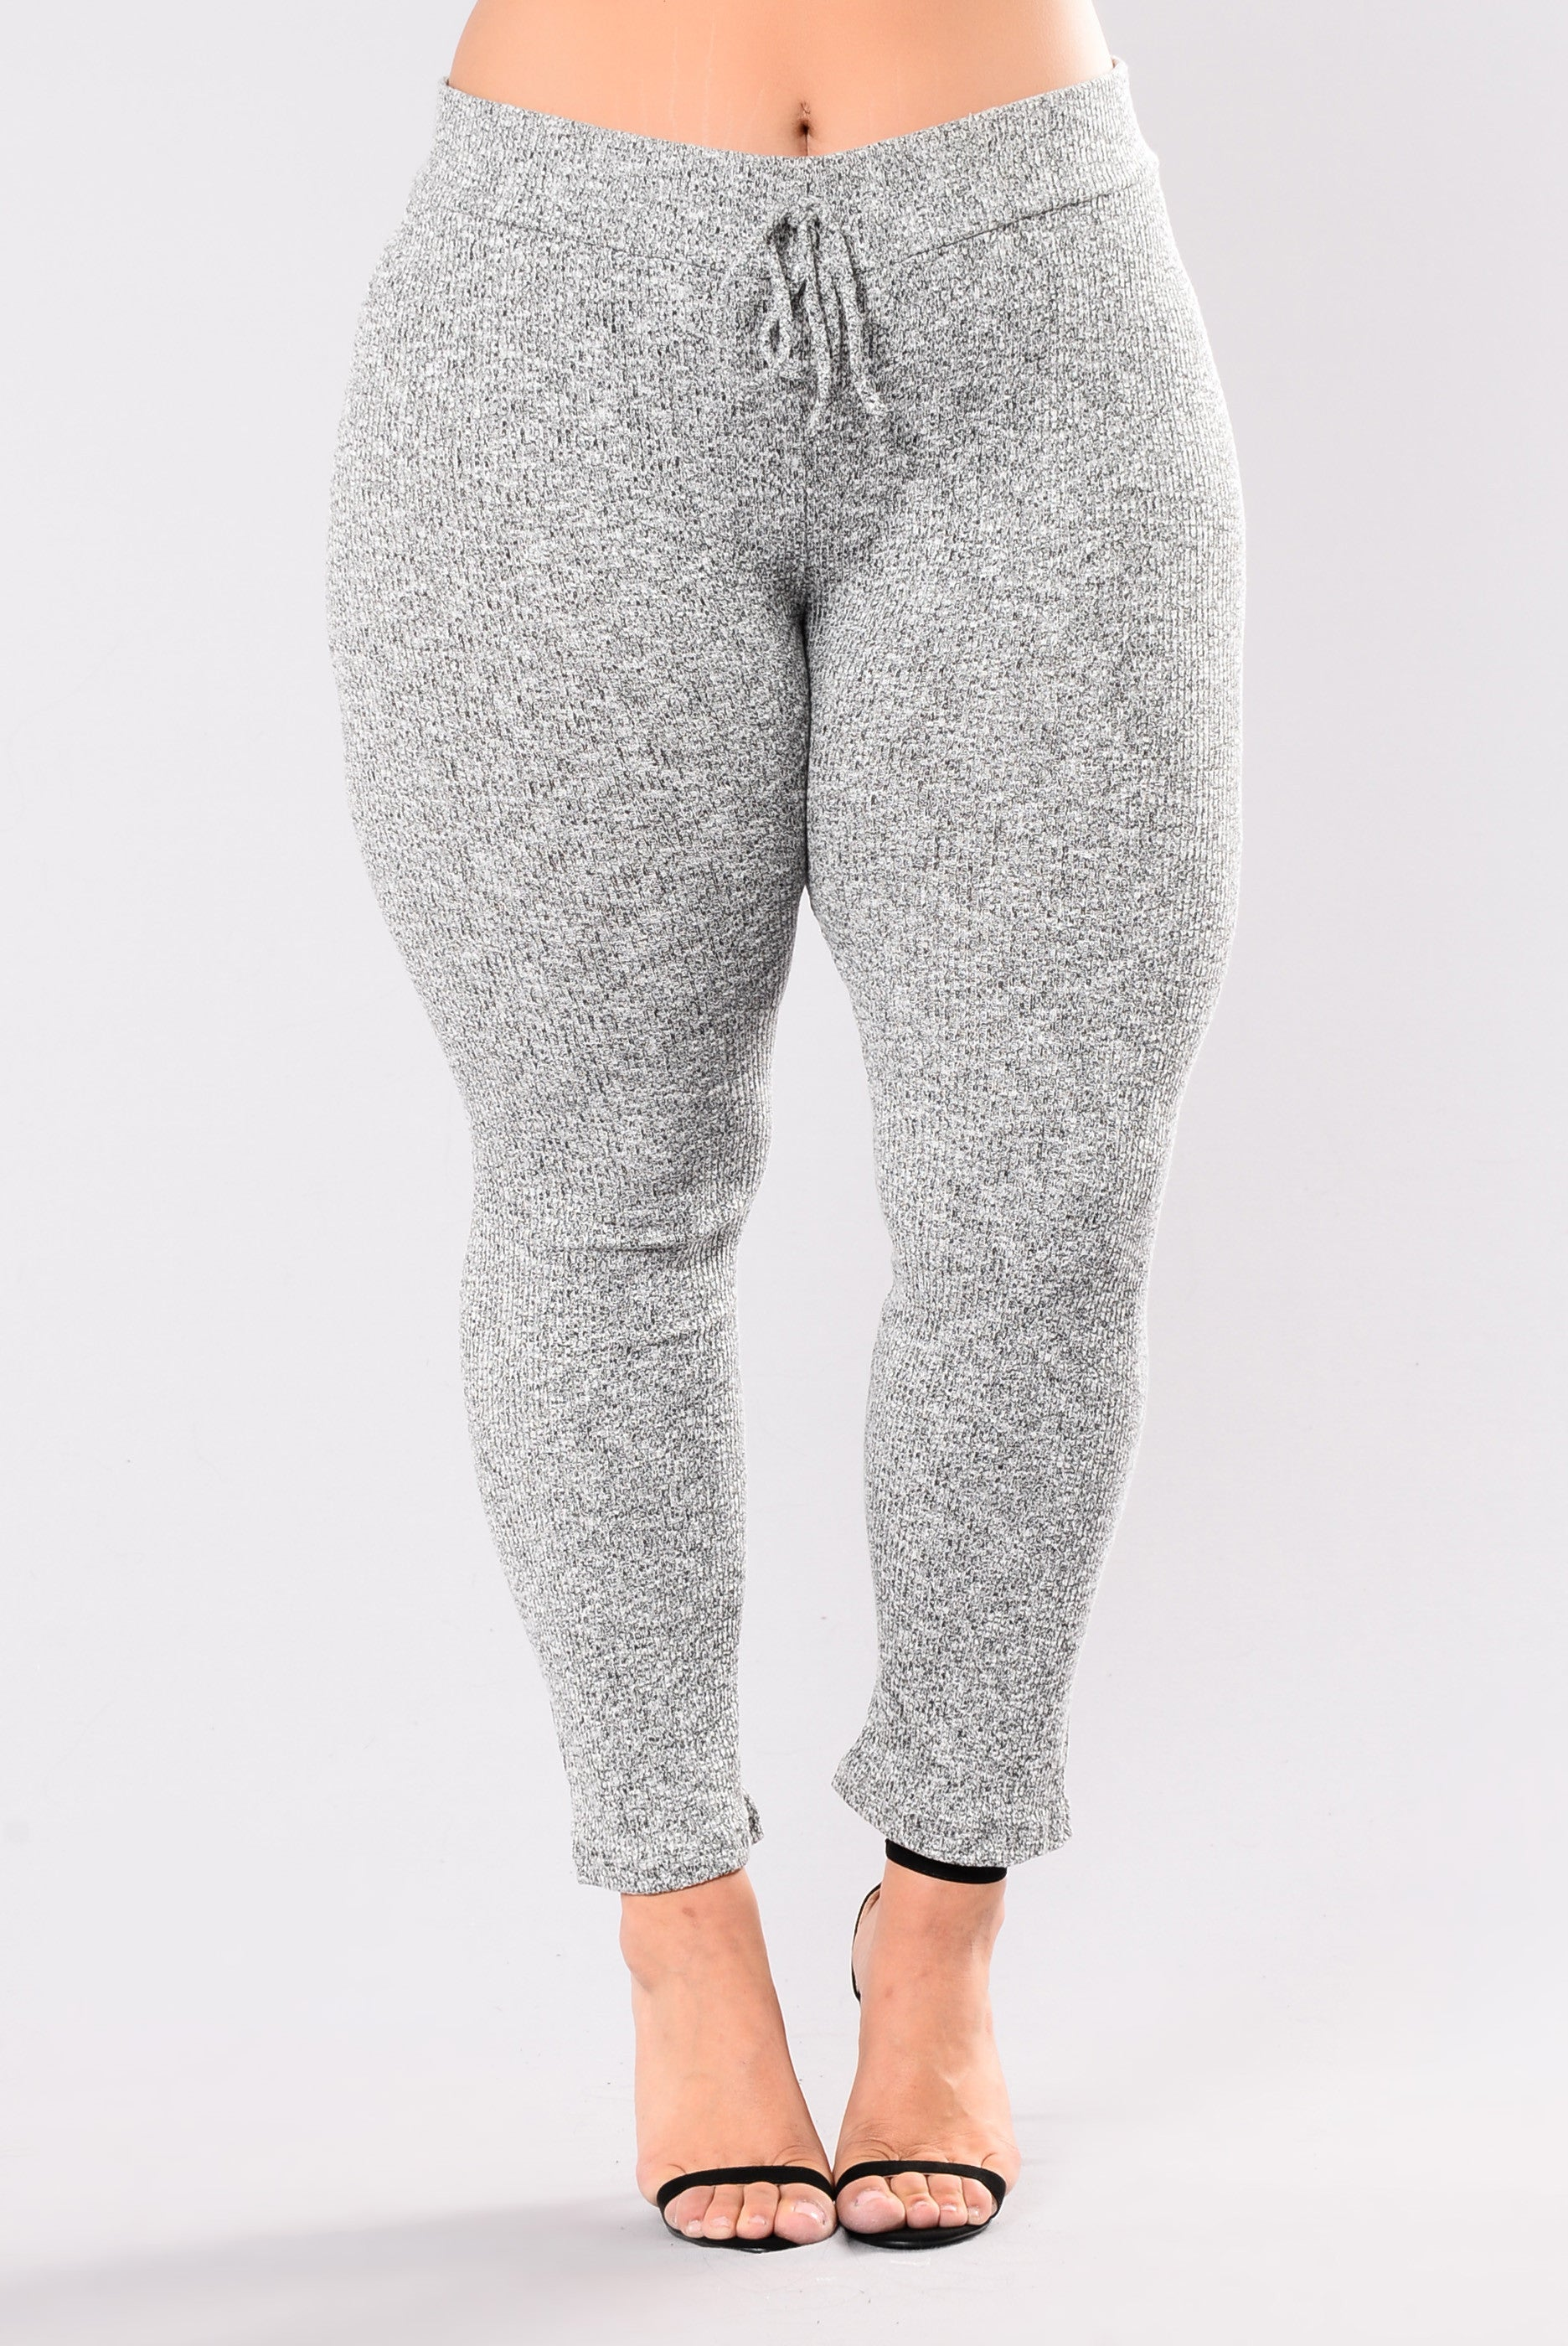 c47608fd72 Wanderlust Leggings - Grey